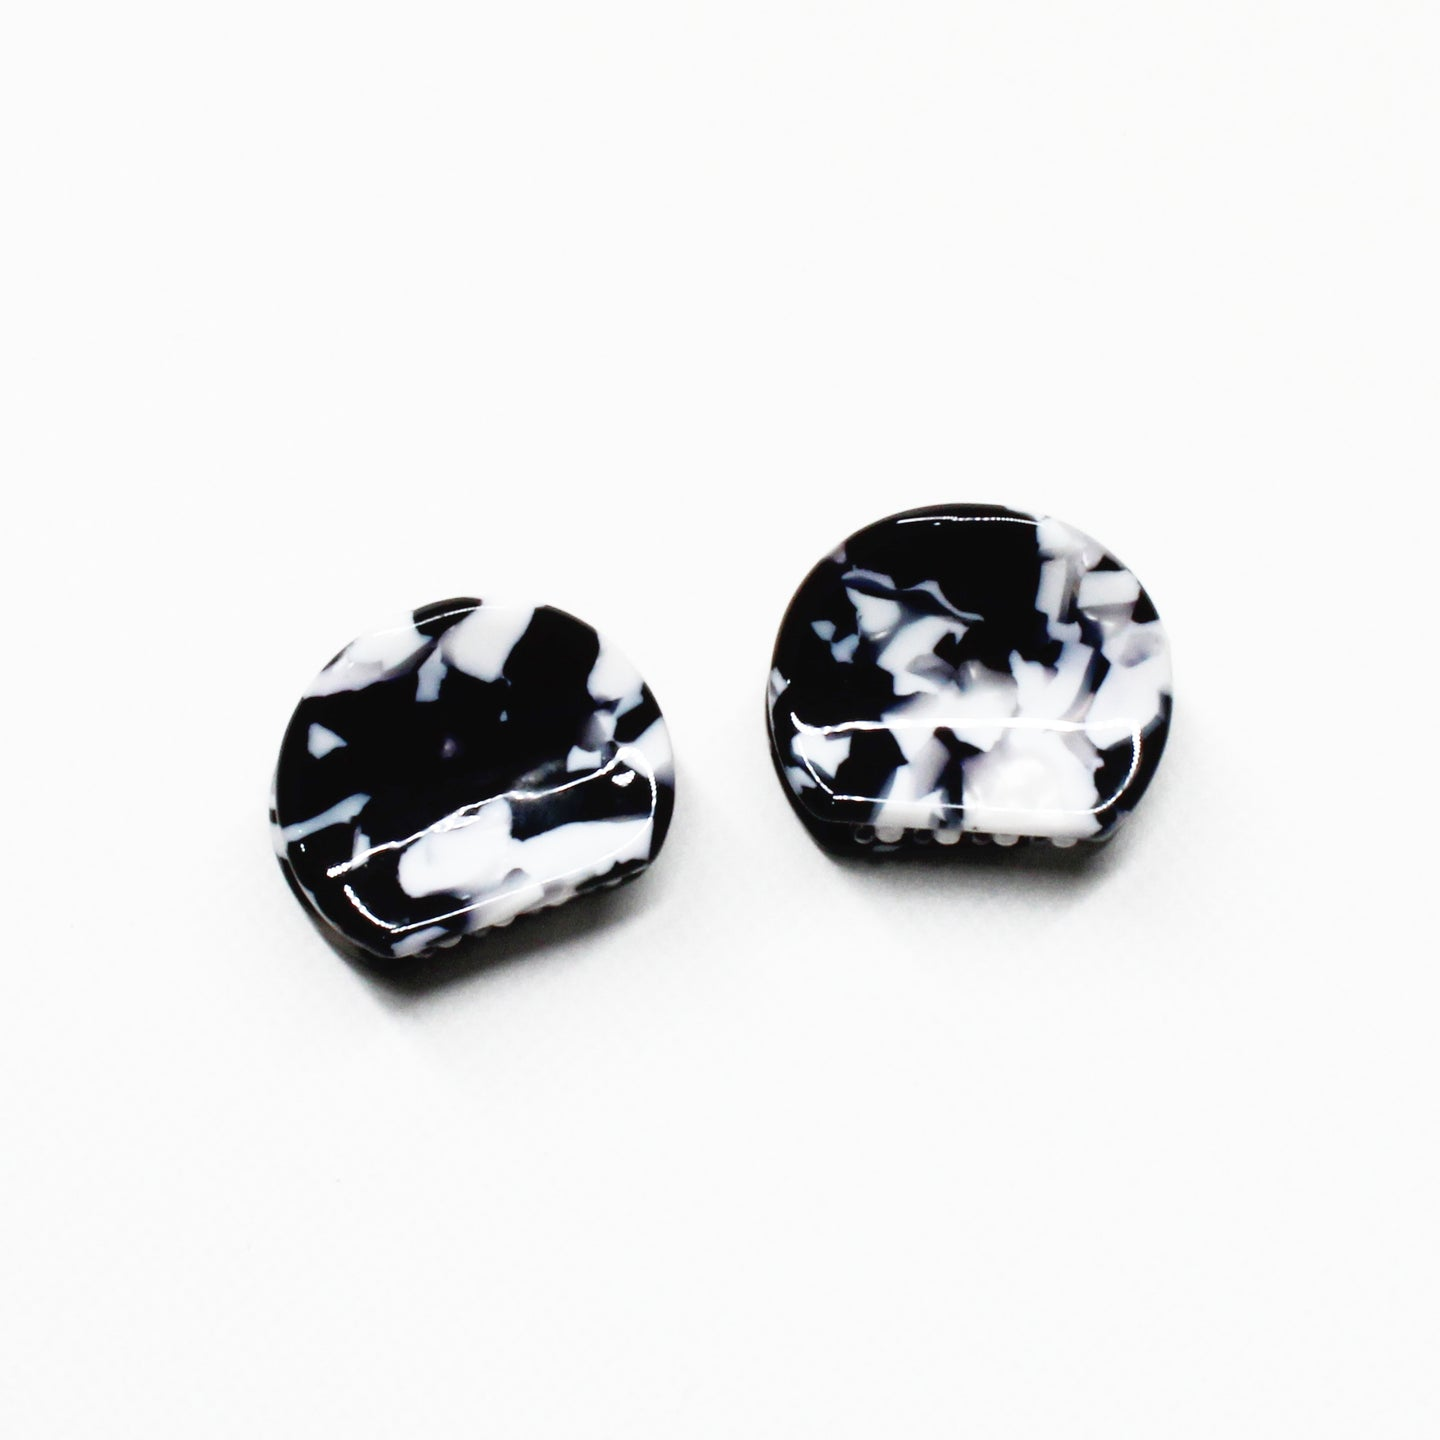 Marbled Monochrome Mini Claw - 1 Pair